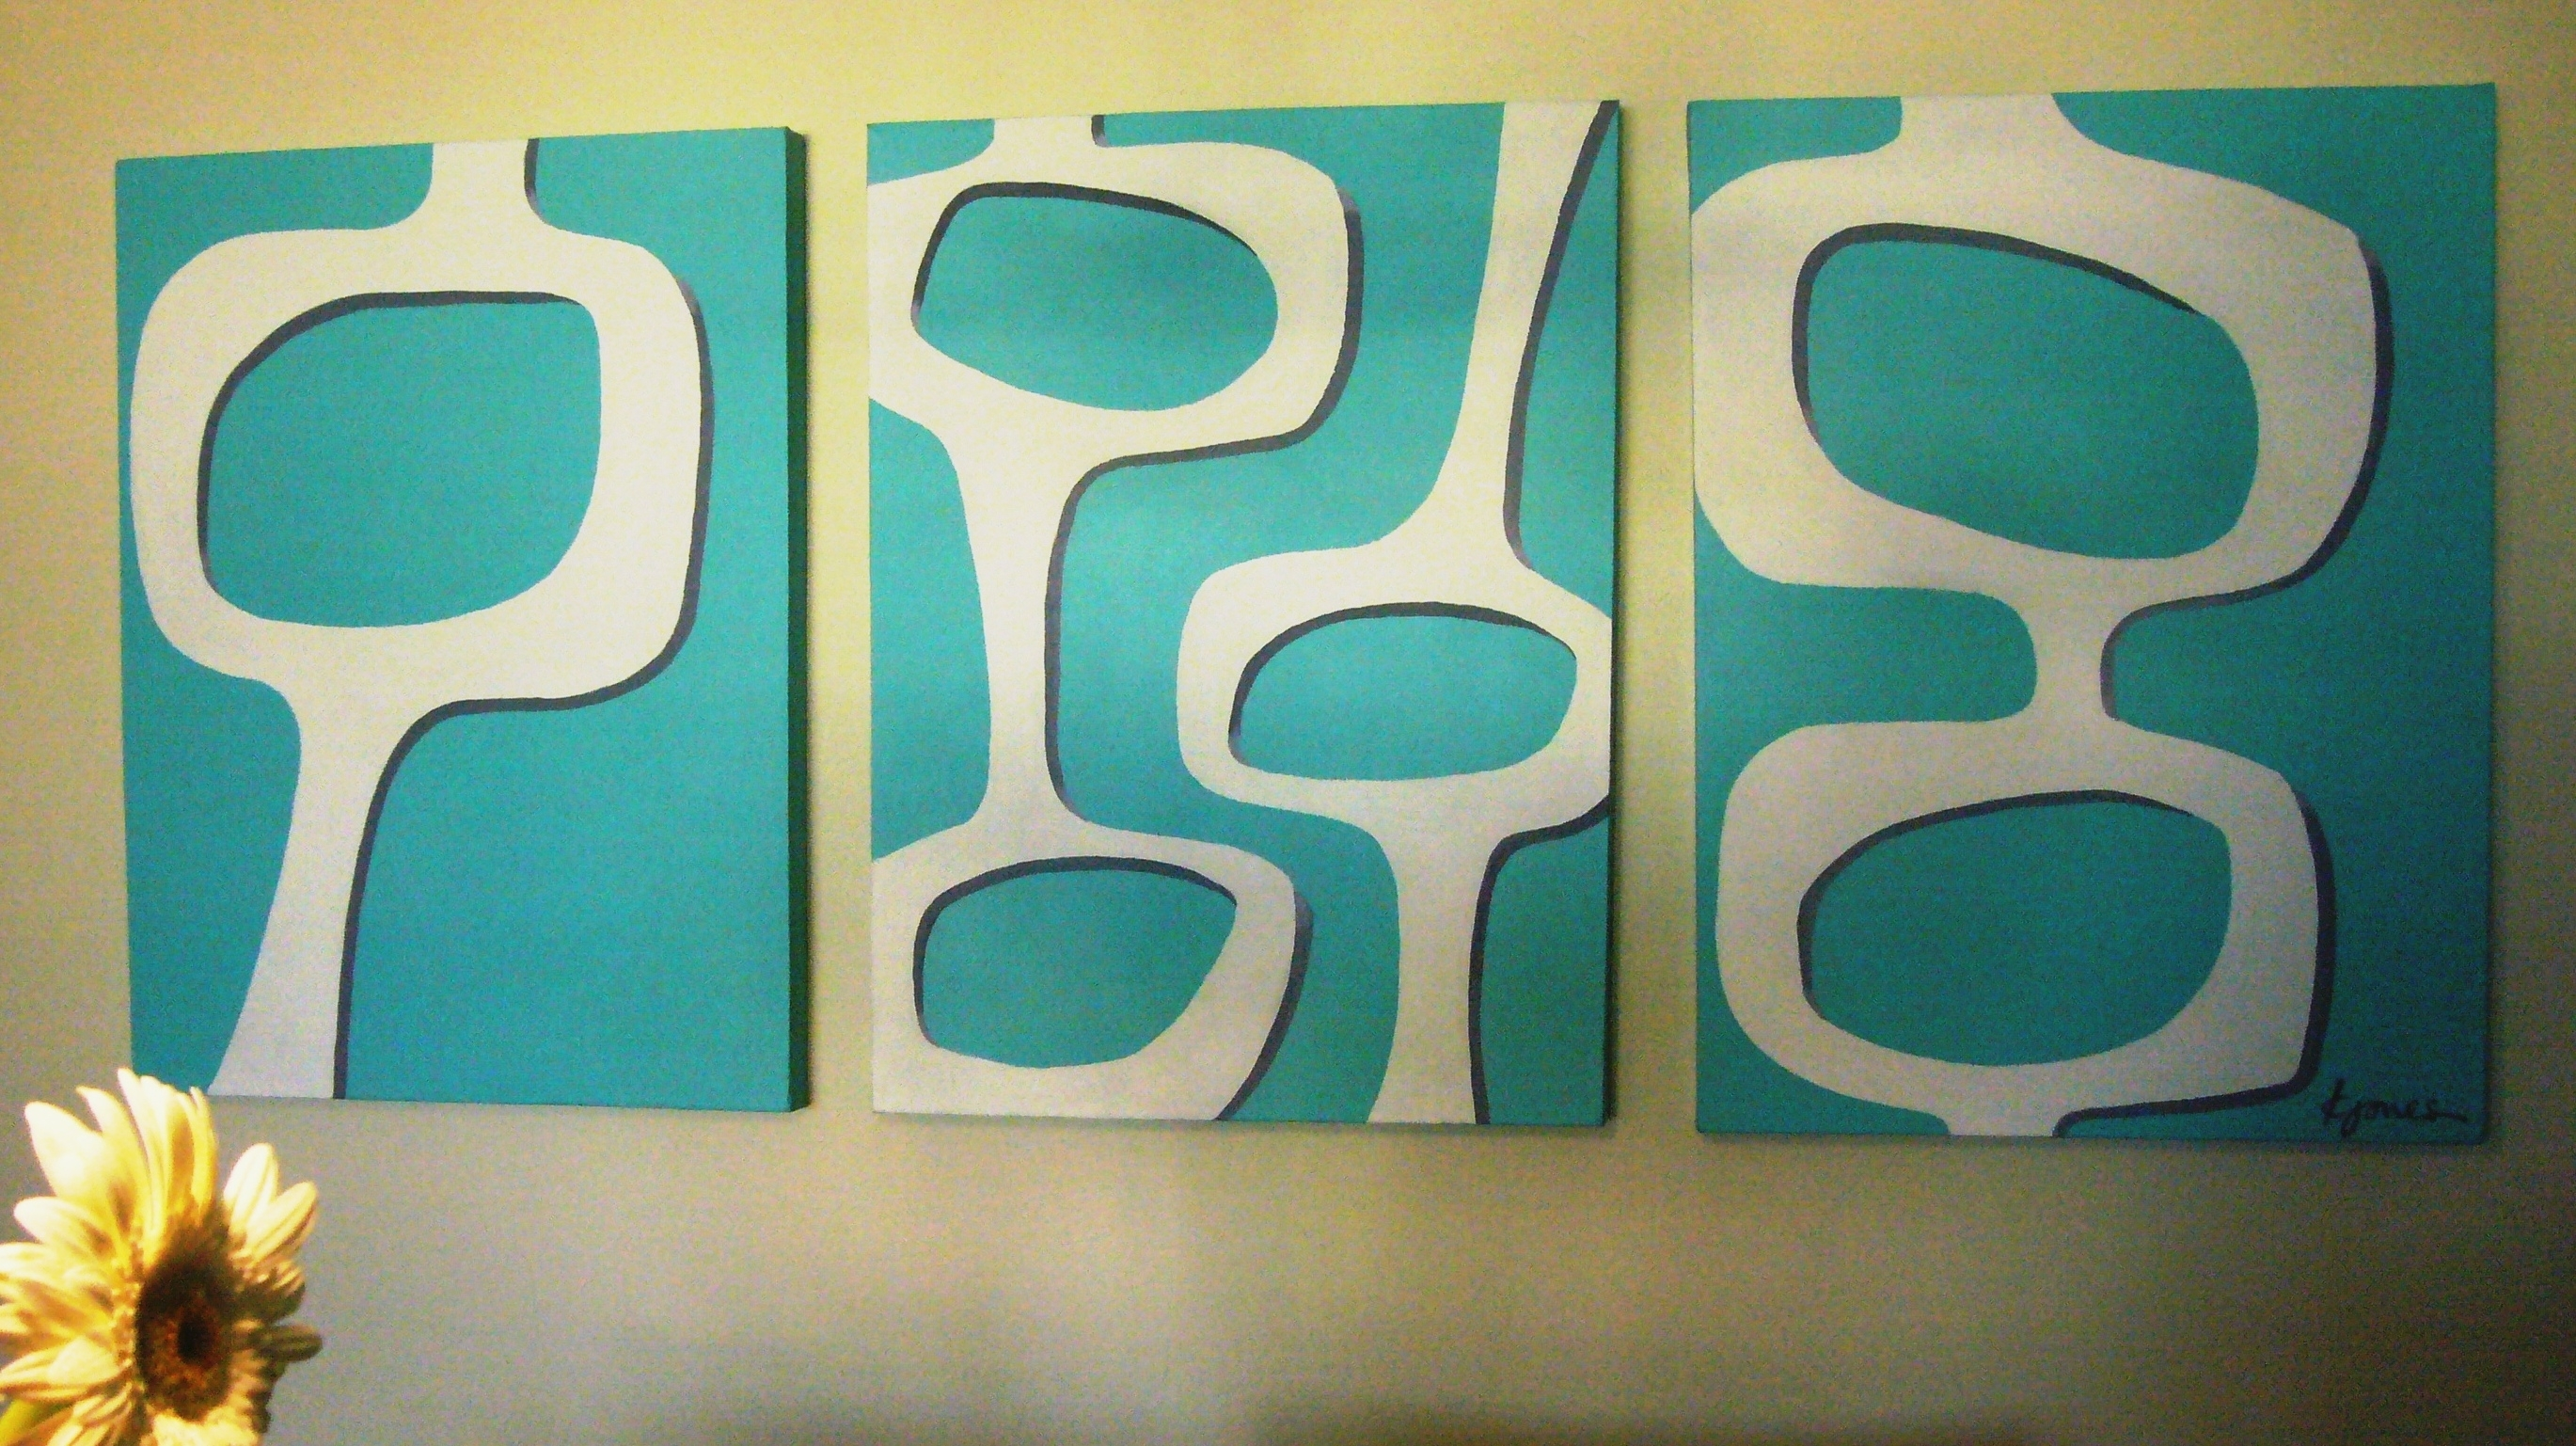 Easy Art | Pennello Lane Pertaining To Current Mid Century Wall Art (View 17 of 20)